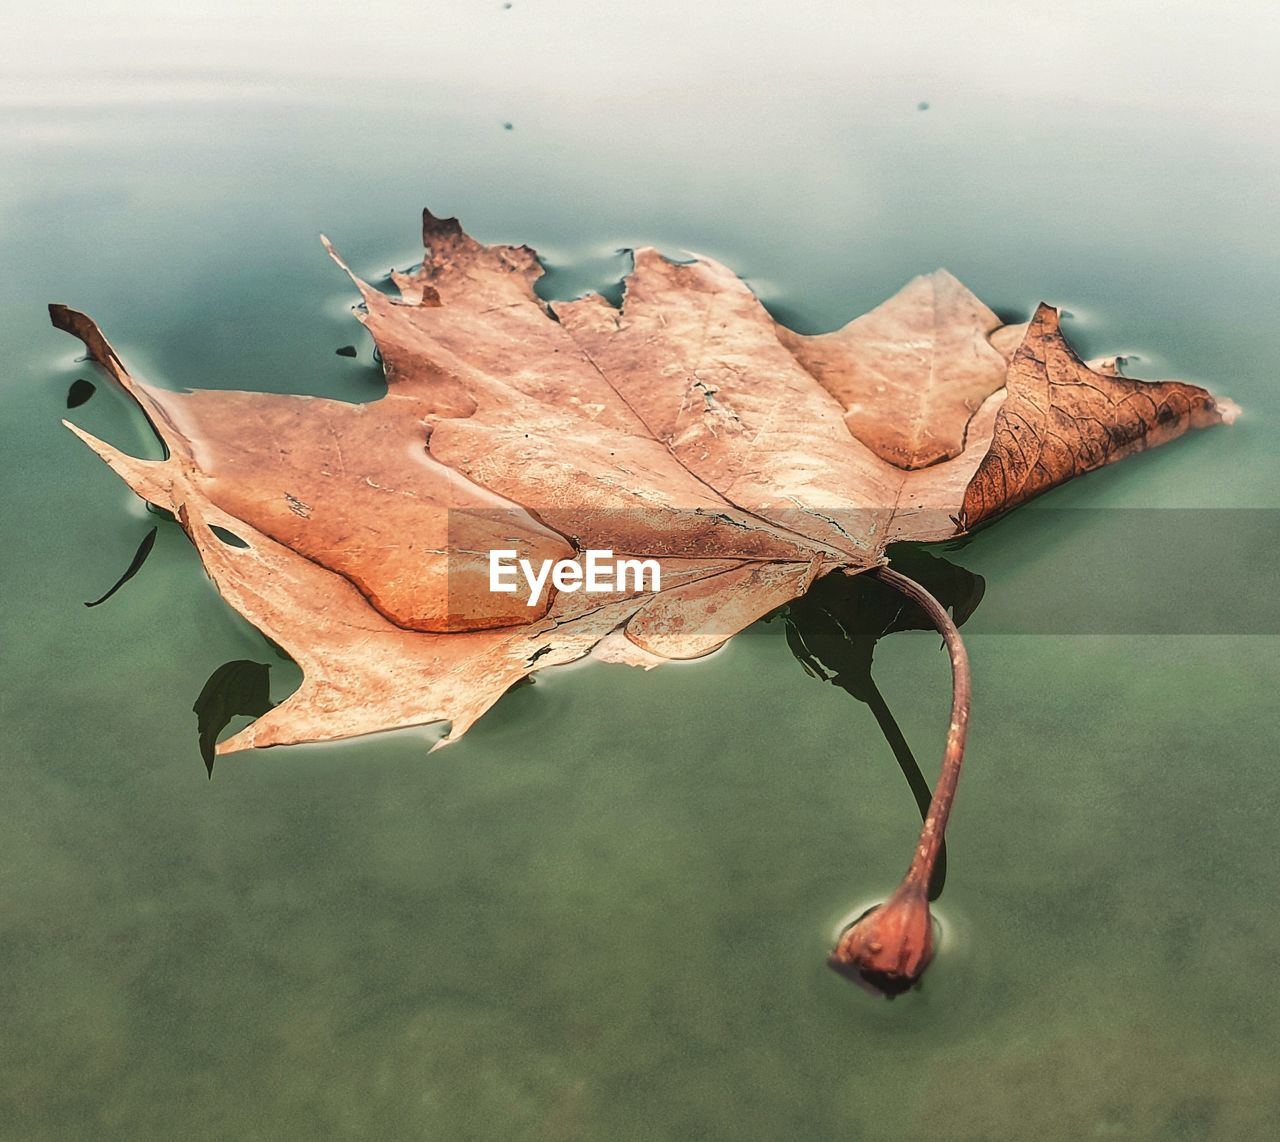 plant part, leaf, autumn, close-up, nature, plant, change, dry, day, no people, beauty in nature, vulnerability, fragility, leaf vein, water, tranquility, outdoors, focus on foreground, leaves, natural condition, maple leaf, floating on water, dried, wilted plant